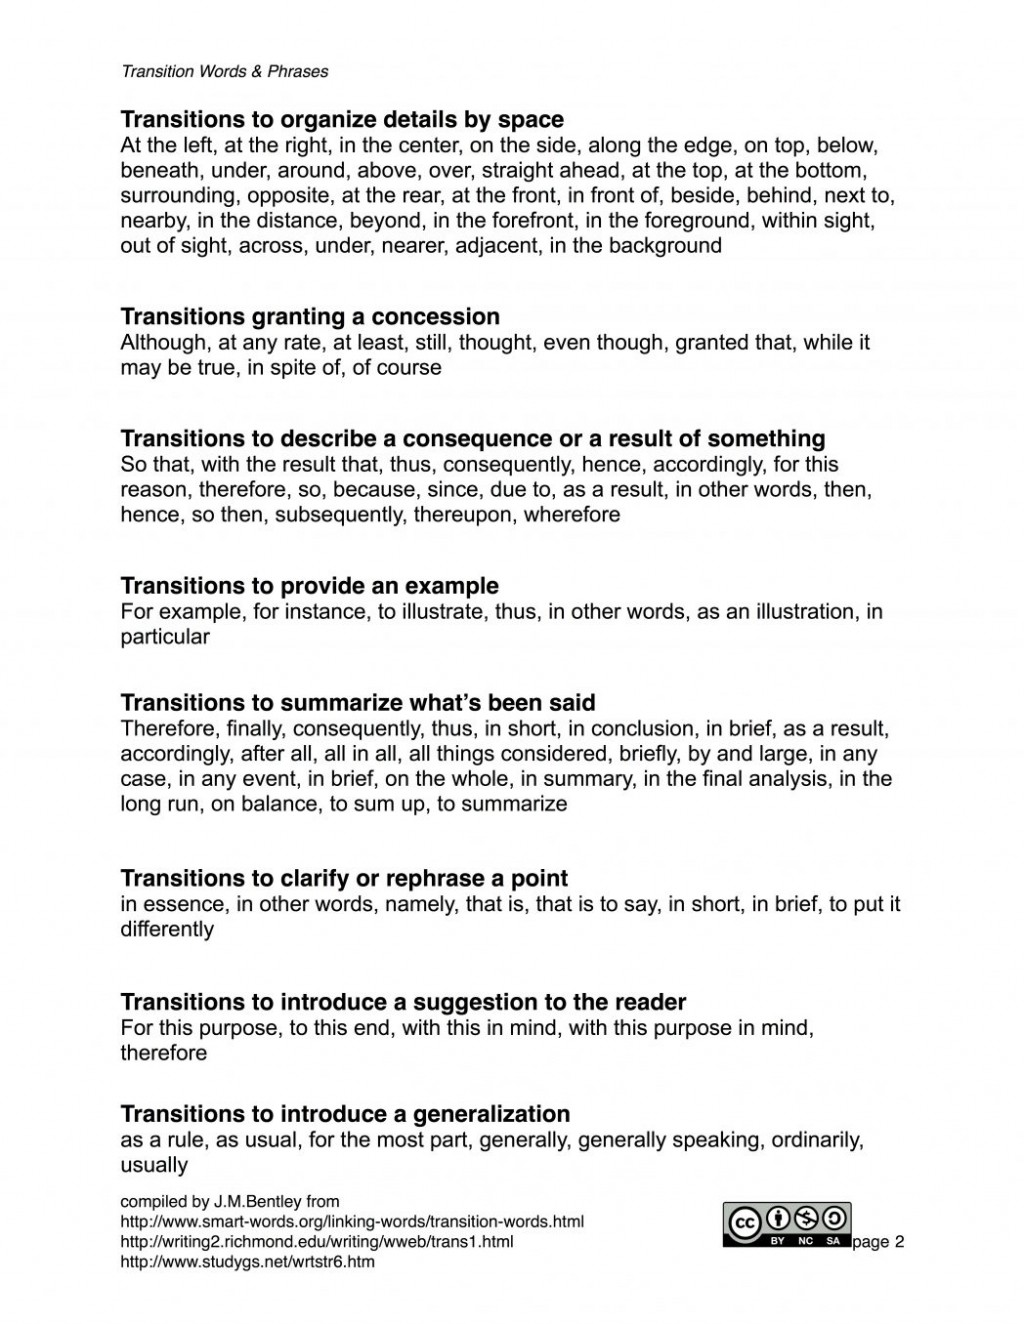 006 Essay Example Transitional Wordsphrases Lesson Plan Clarendon Learning Some Words And Phrases Worksheet Answers Best Transition Printabl Tsi Writing Prompts Scores Excellent Outline Sample Questions Large